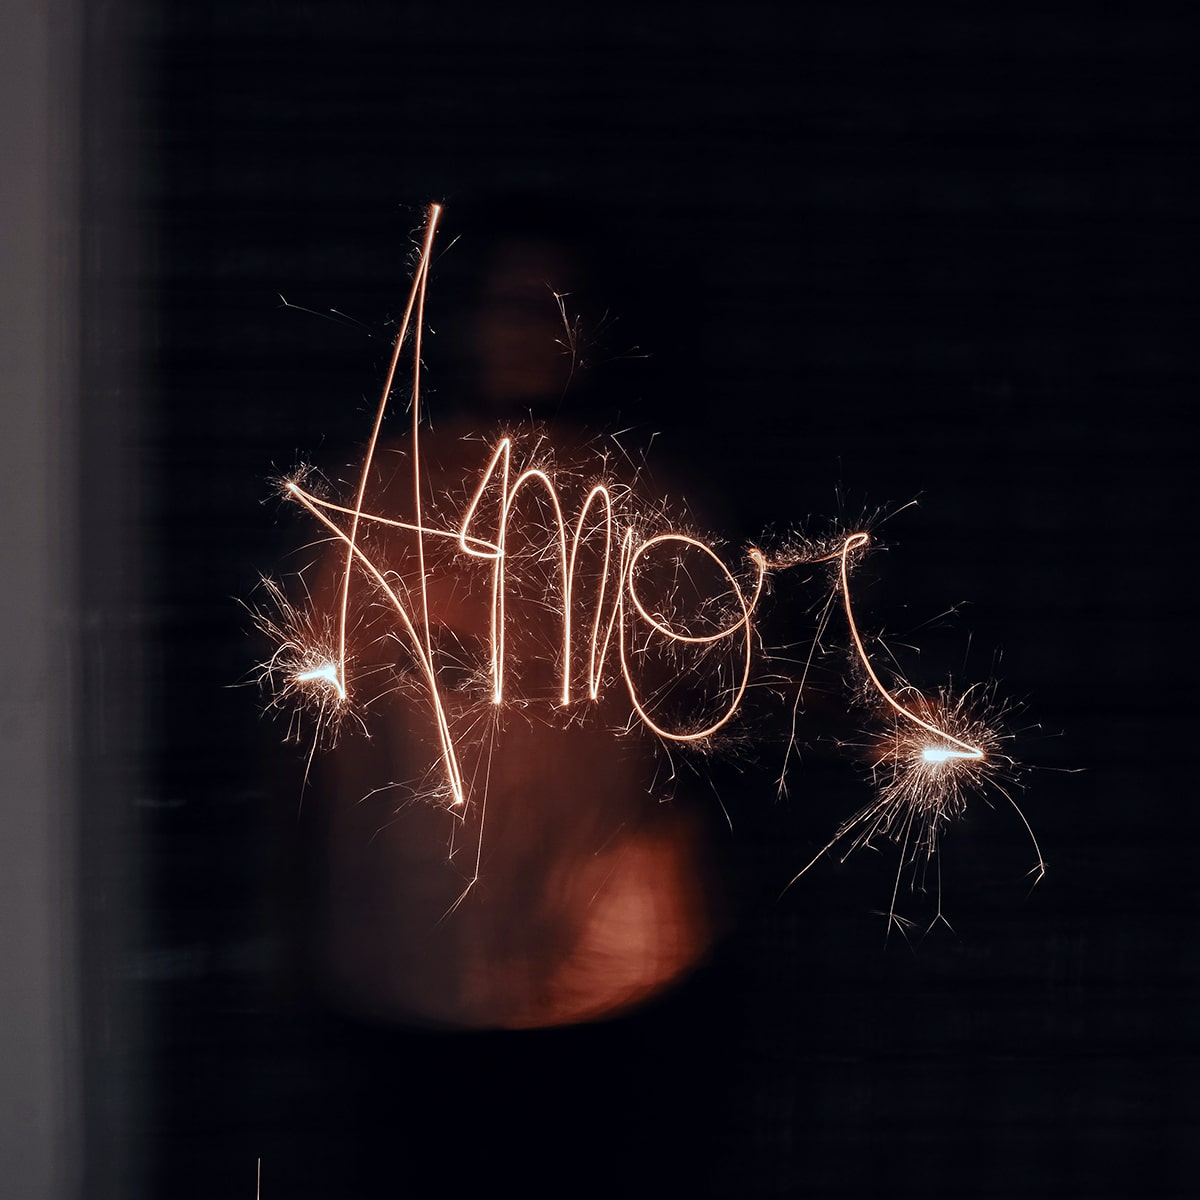 """Image of a Person Writing the Word """"AMOR"""" with Sparklers"""